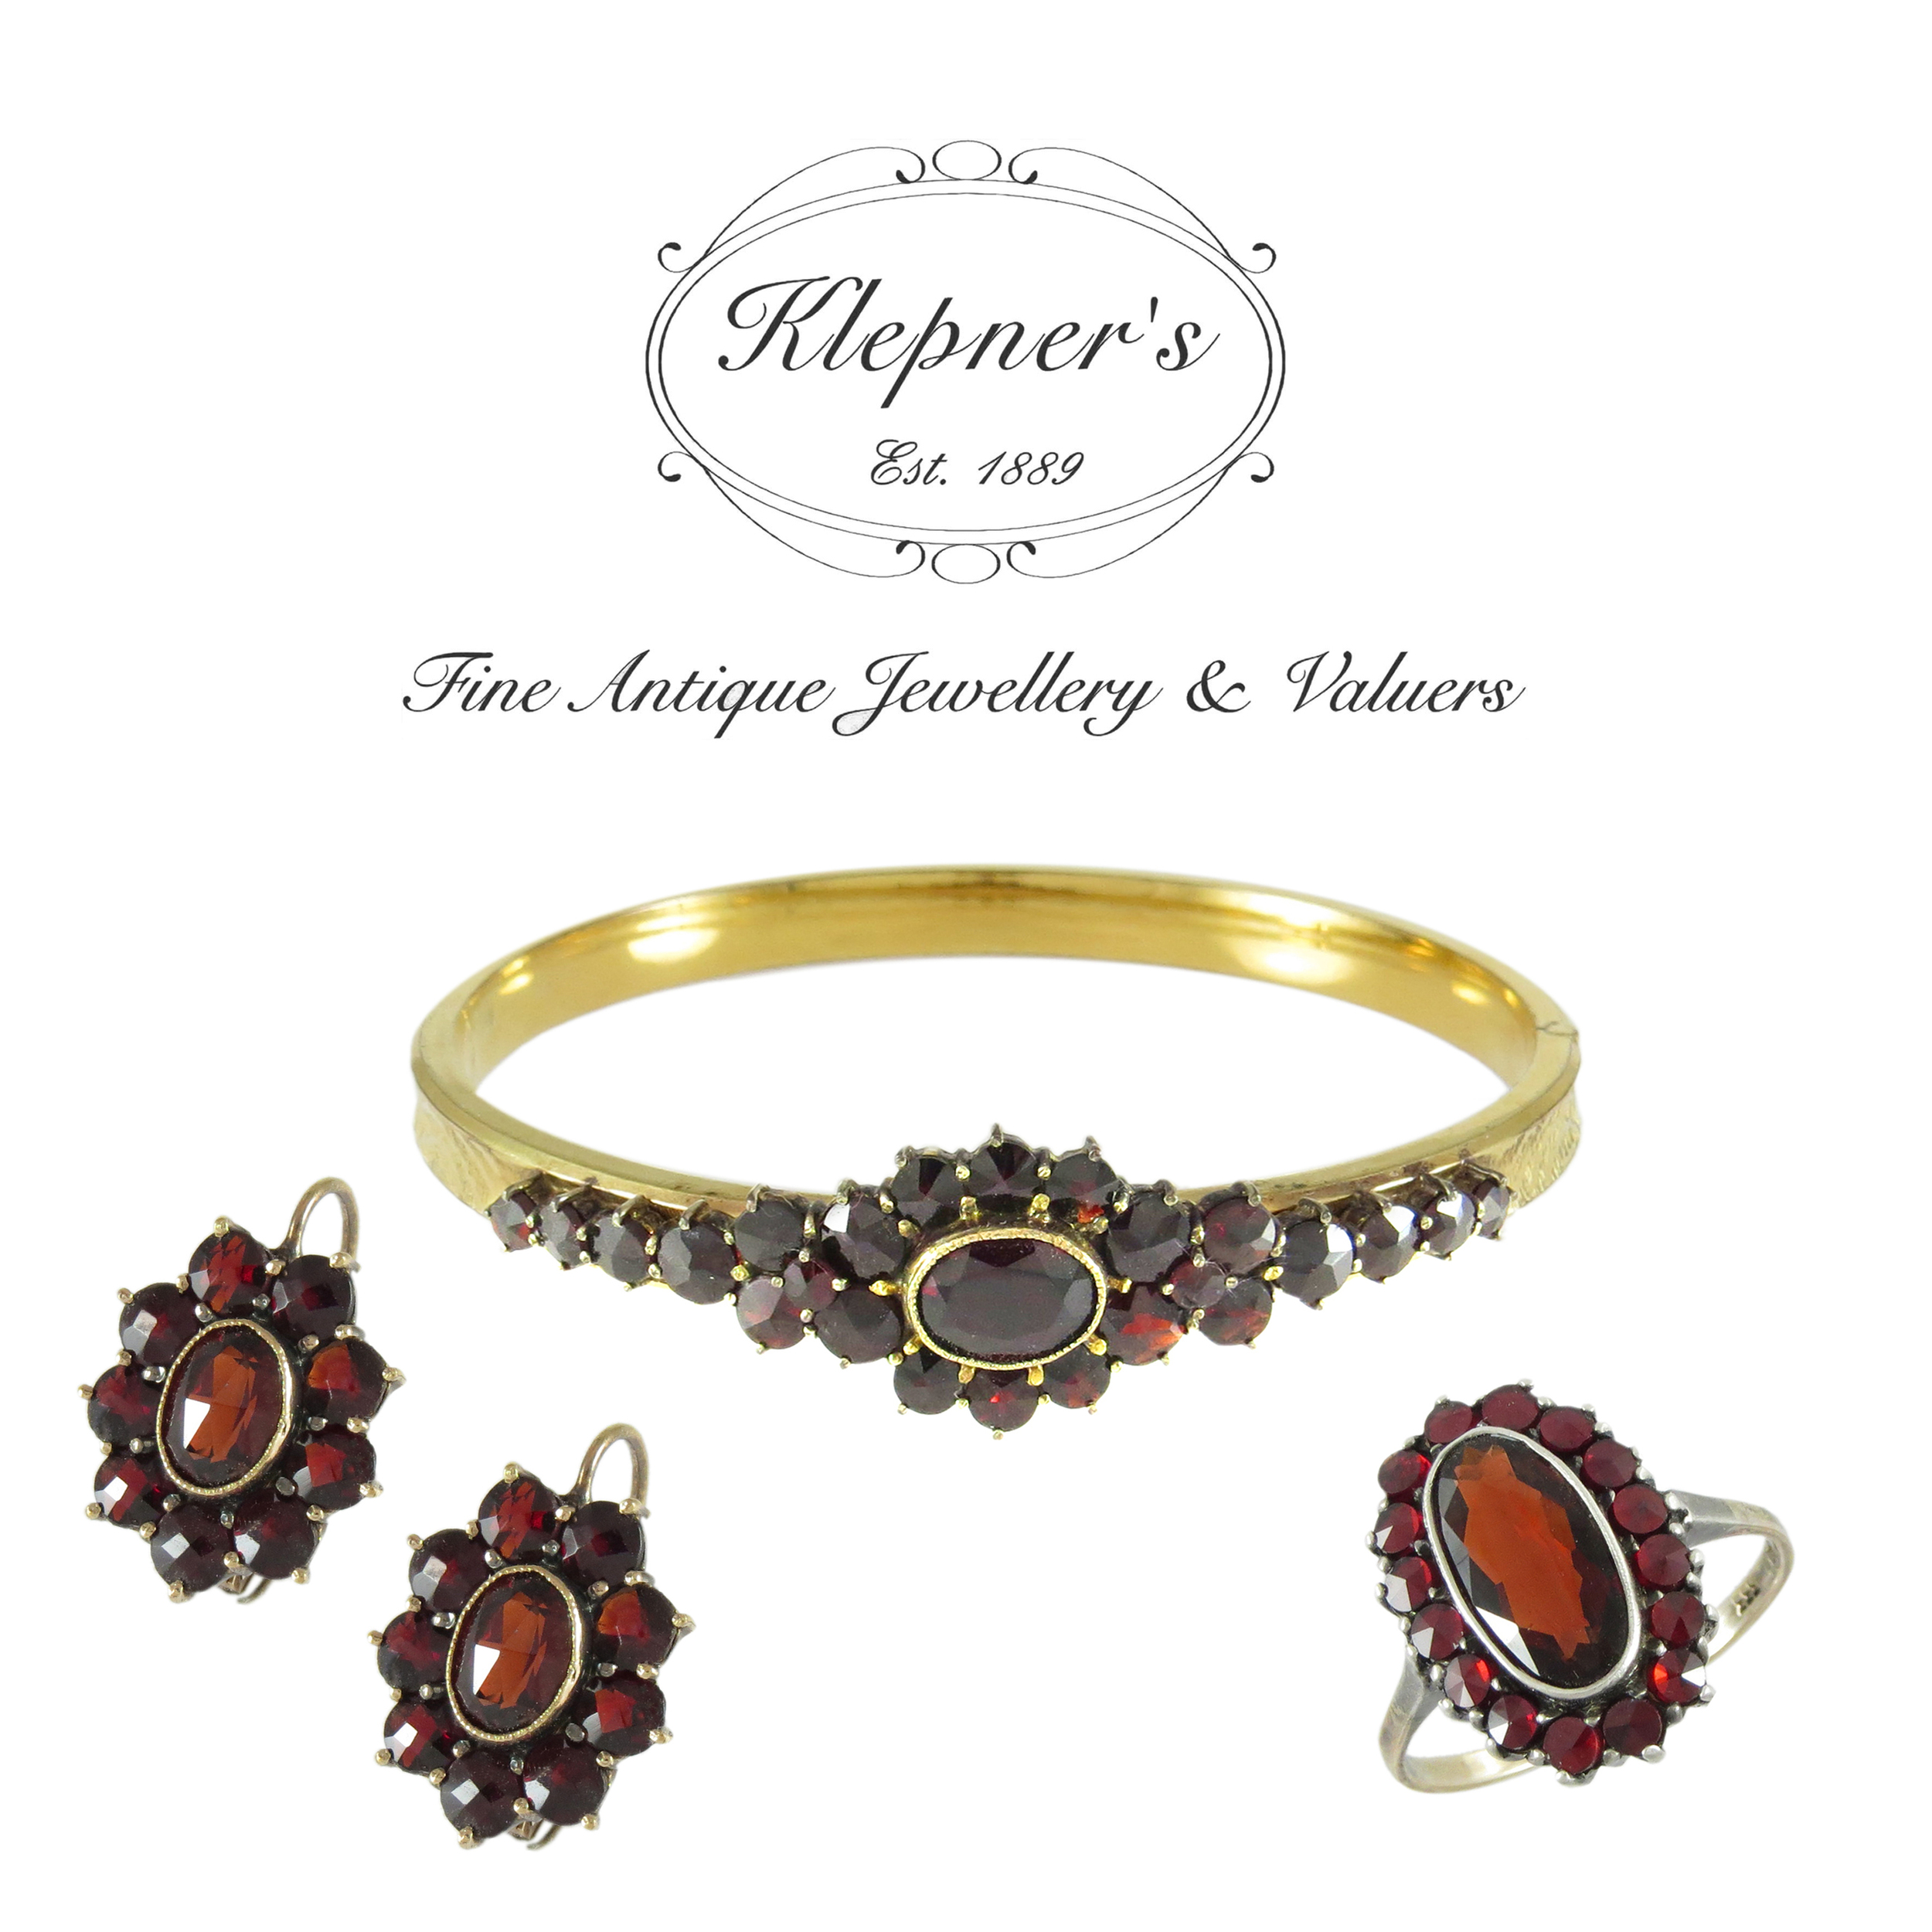 Antique Bohemian Garnet Jewellery.jpg